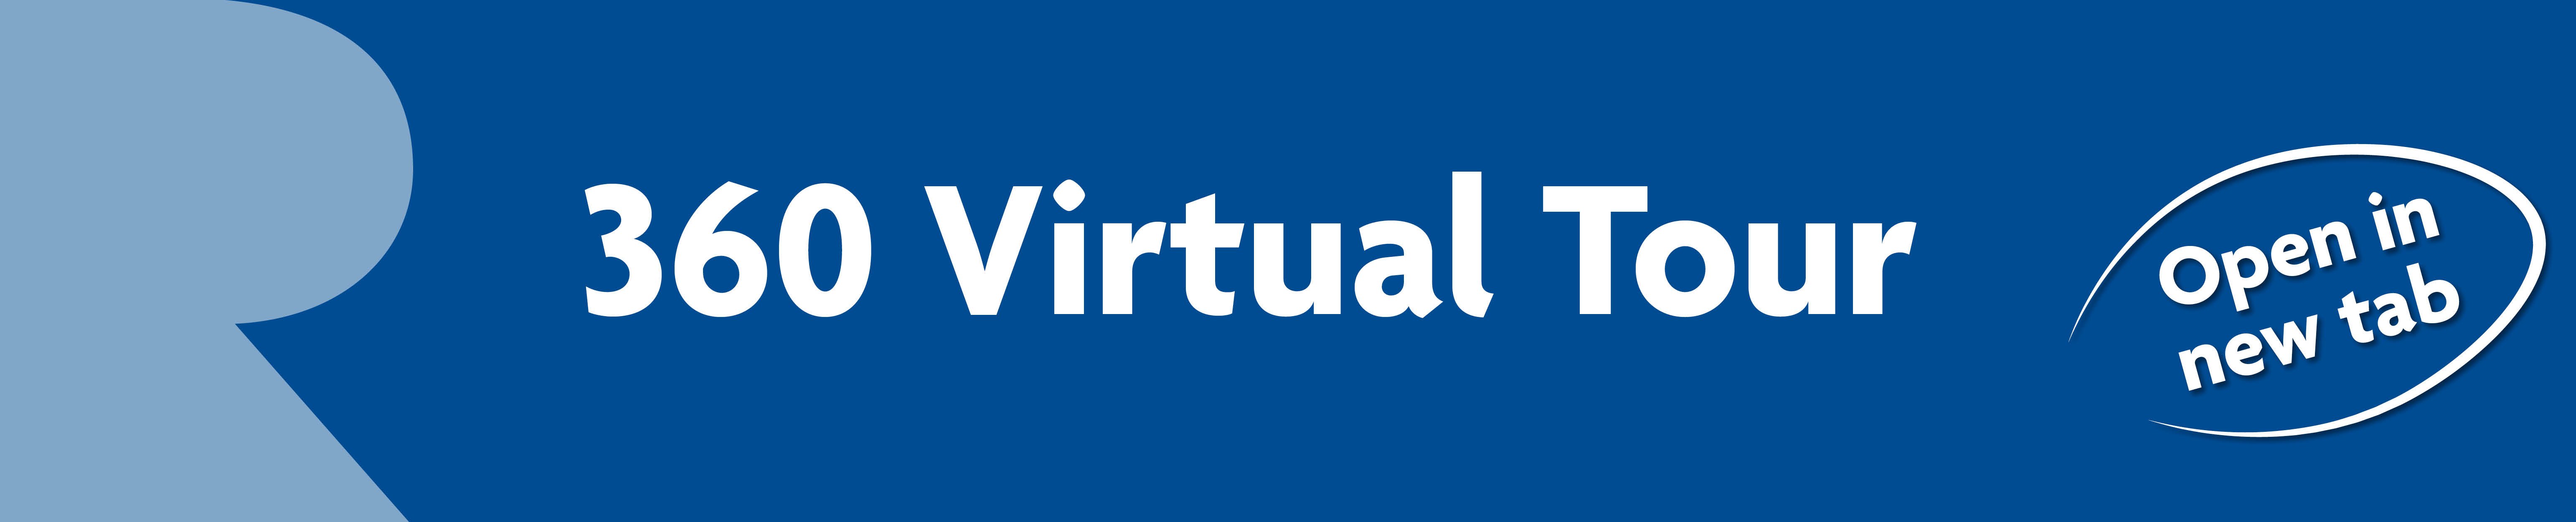 360 virtual tour button 2020